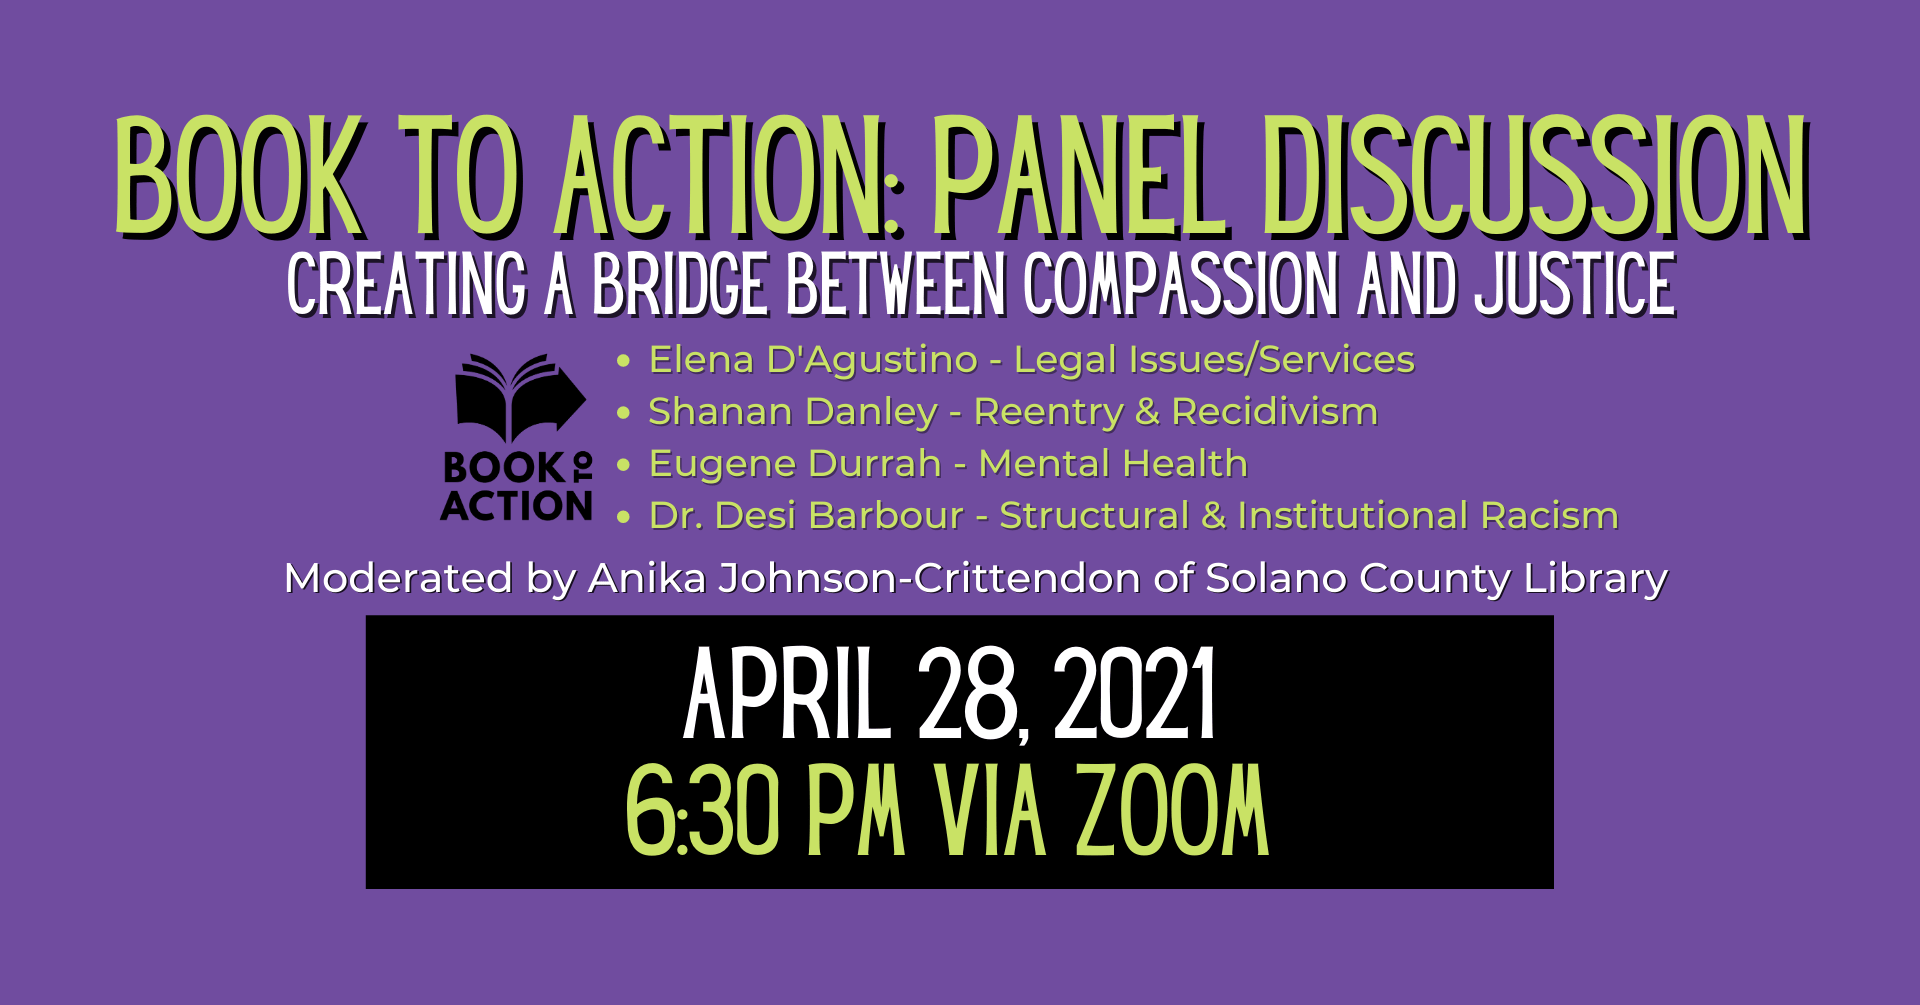 Book To Action: Panel Discussion on 4.28.2021